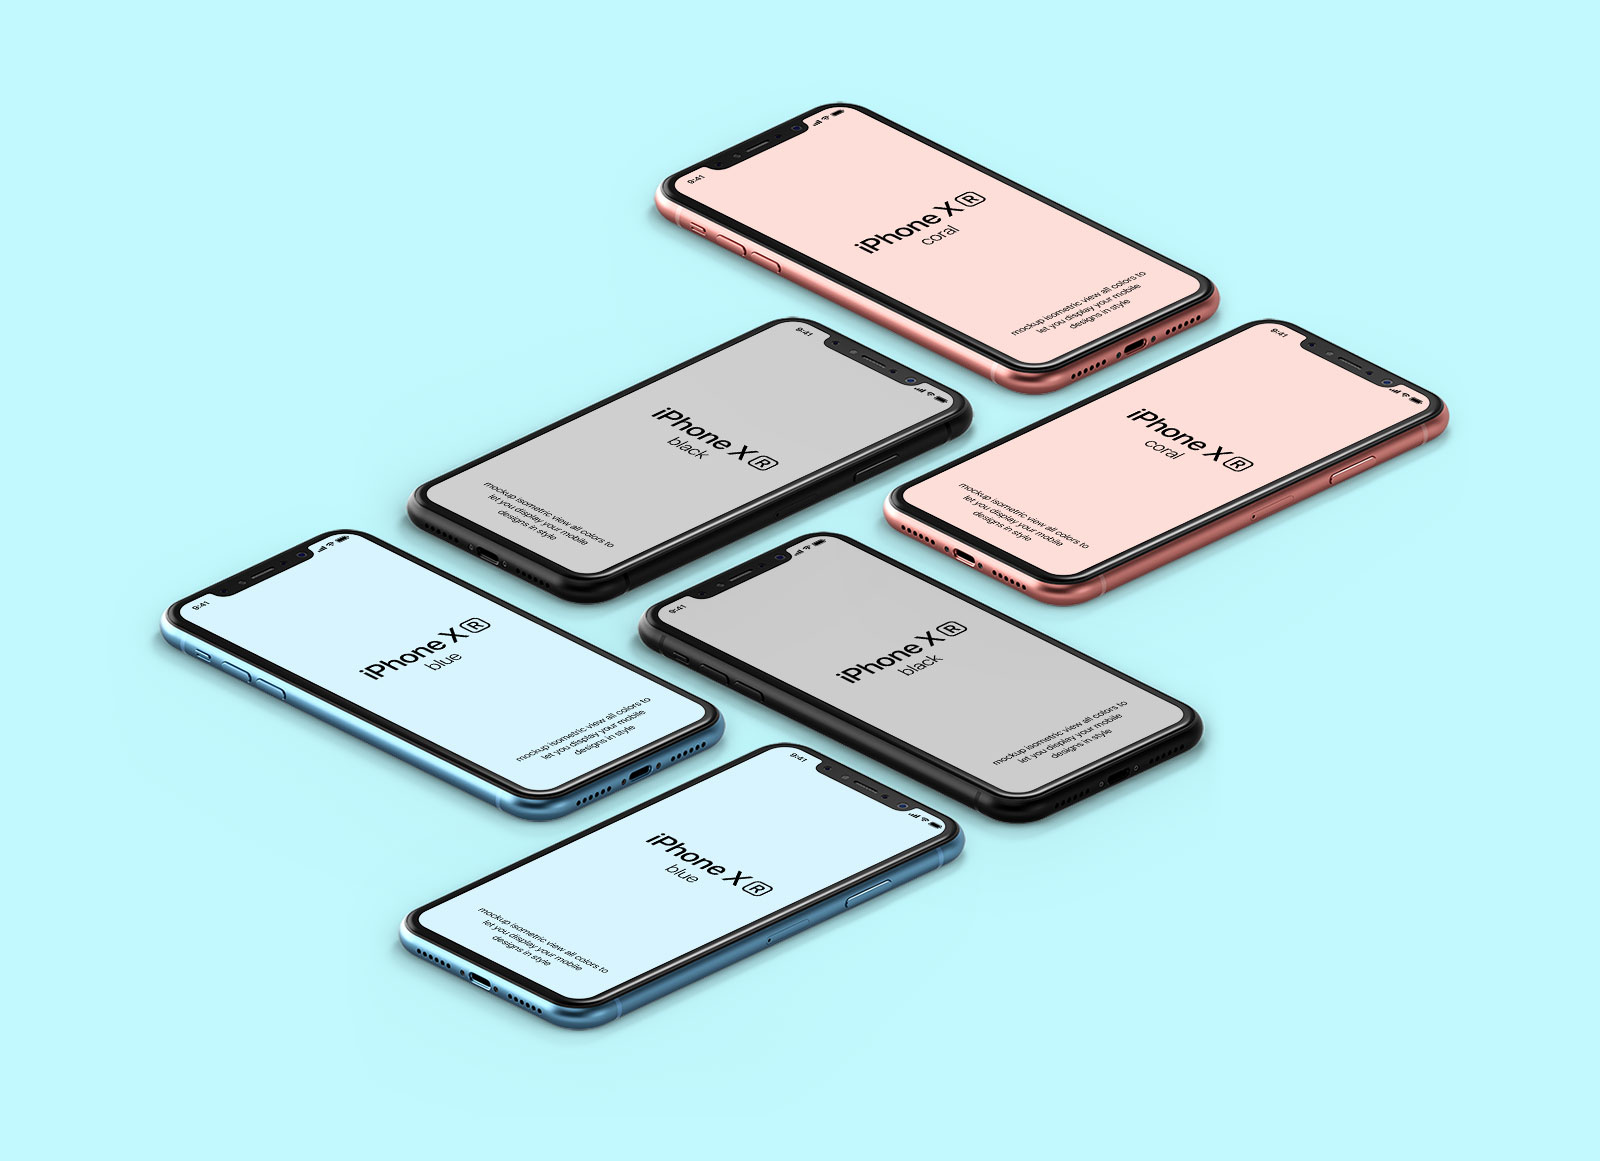 Free Isometric iPhone XR On Floor Mockup PSD